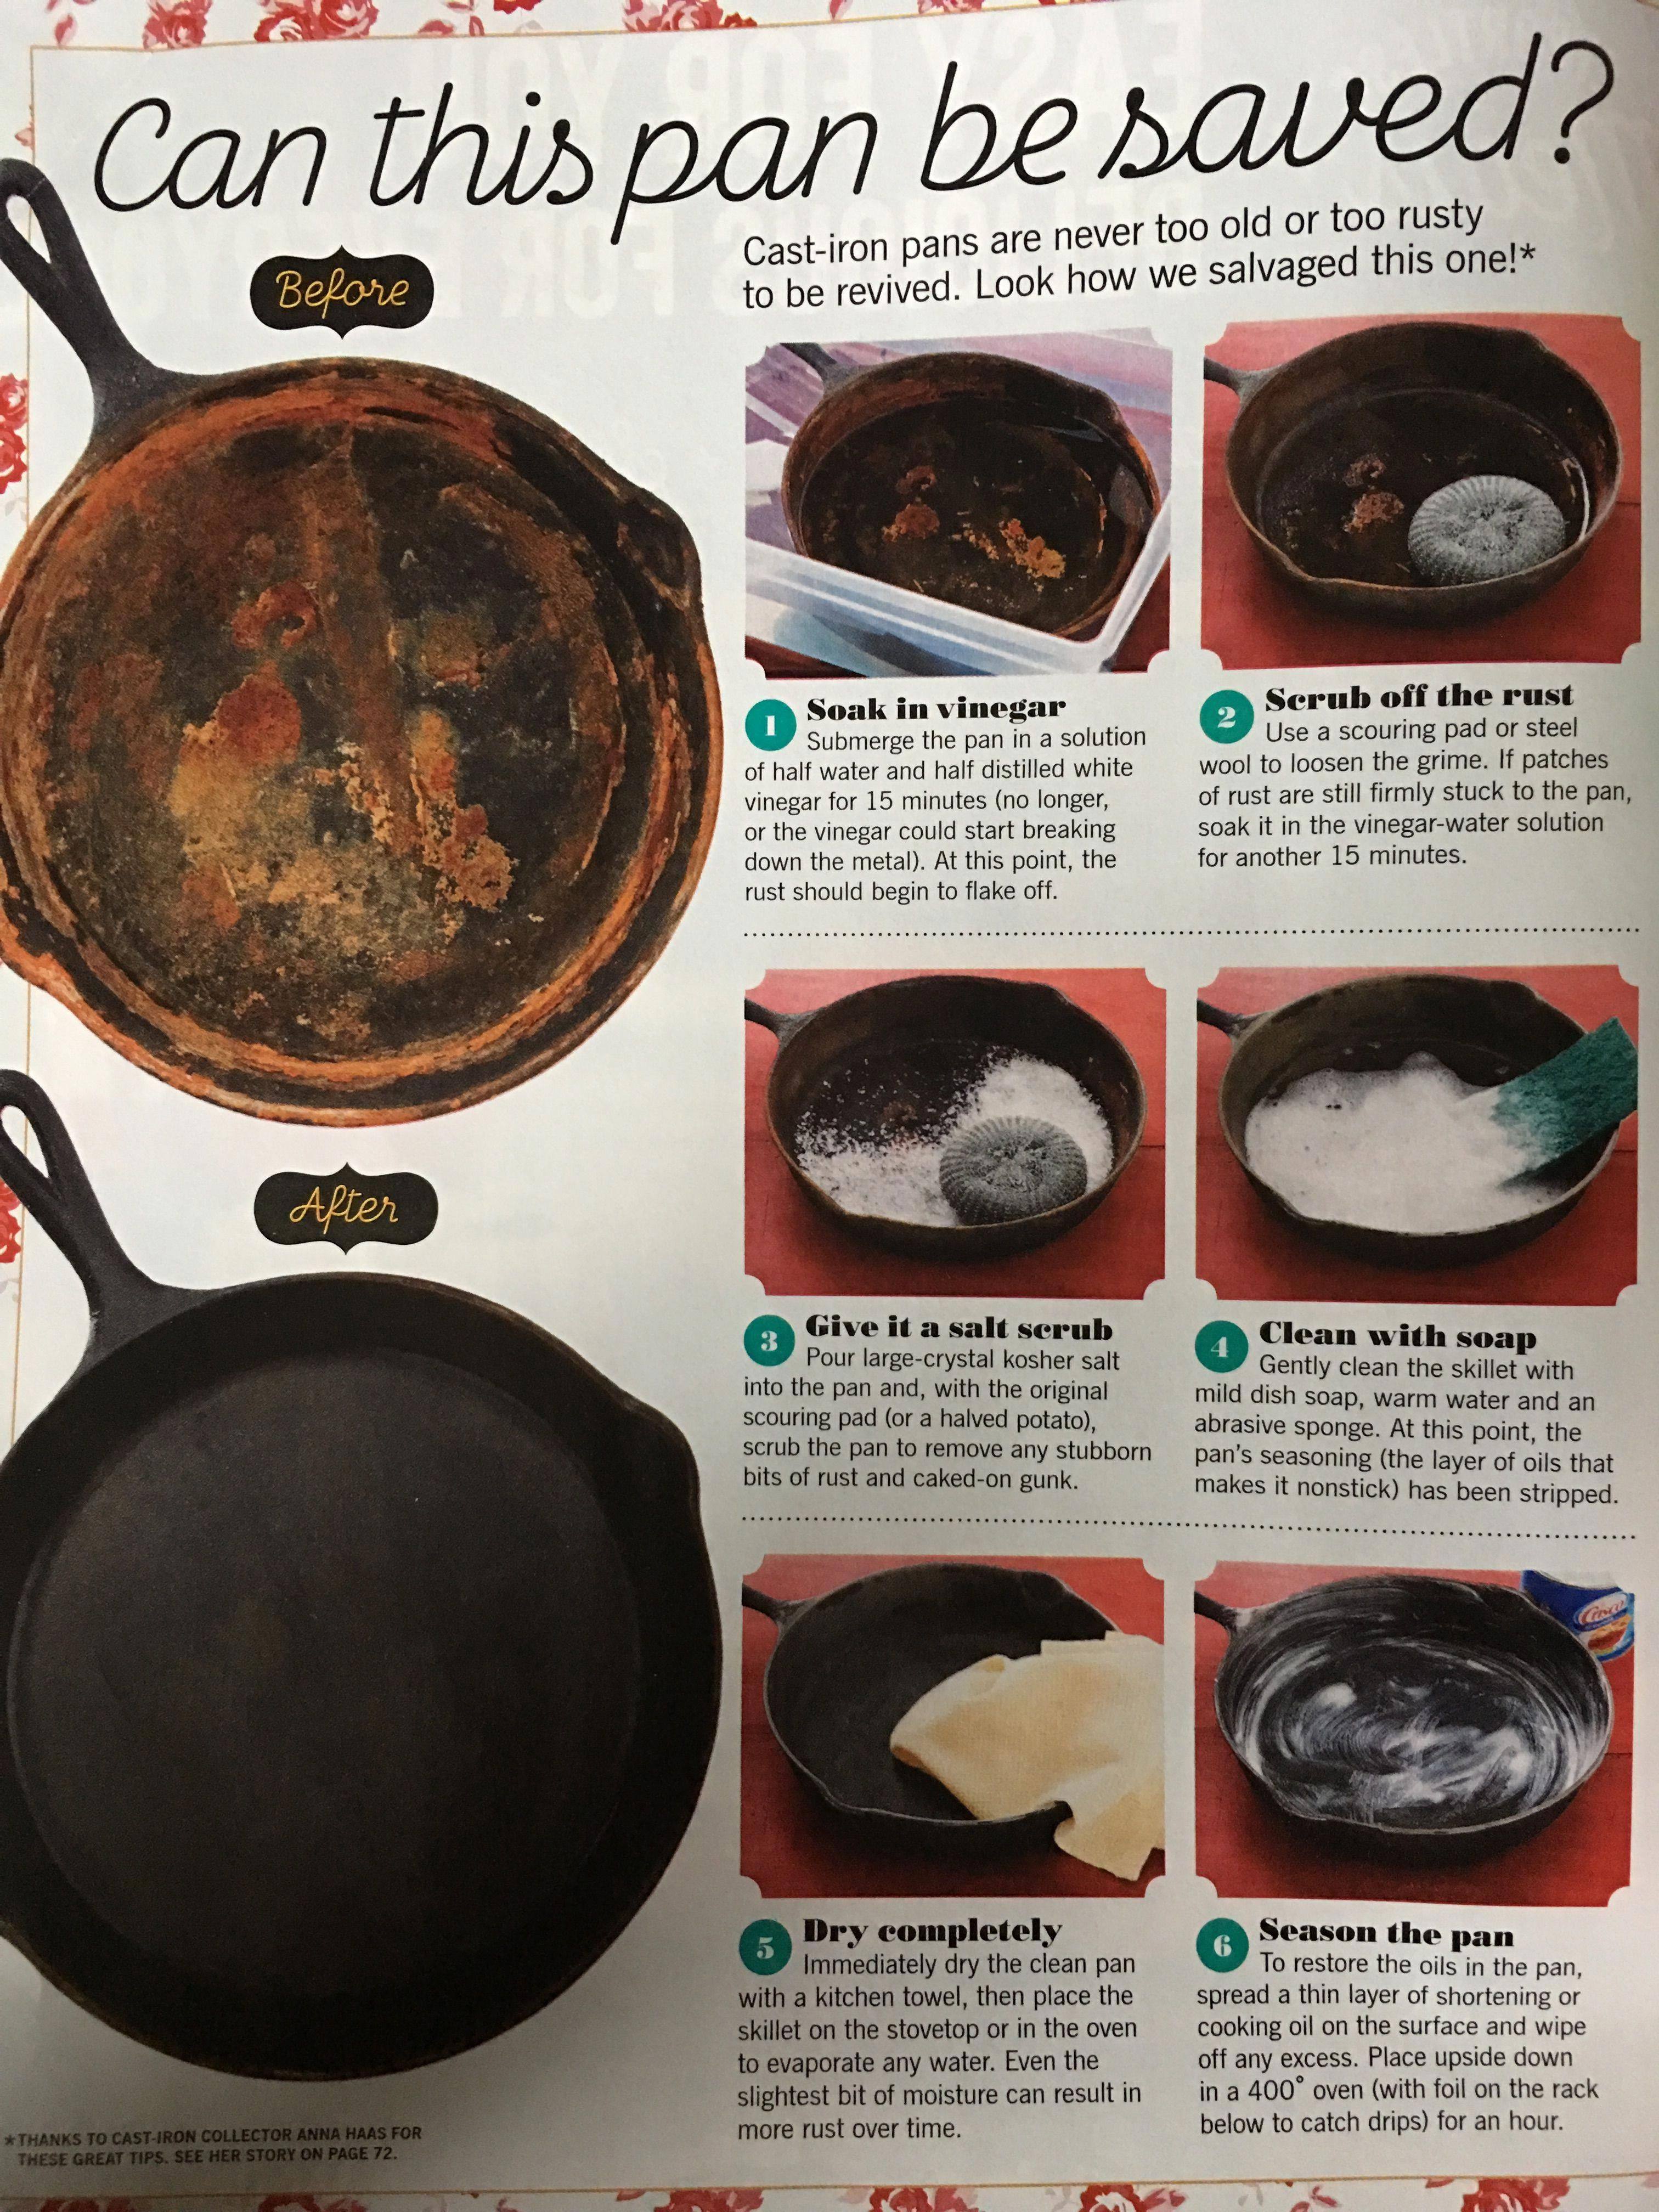 Fun Camp Cooking Dishes Are A Particularly Great Activity For Family Camp Outs On A Household Cleaning Cast Iron Skillet Cast Iron Cleaning Cast Iron Cooking